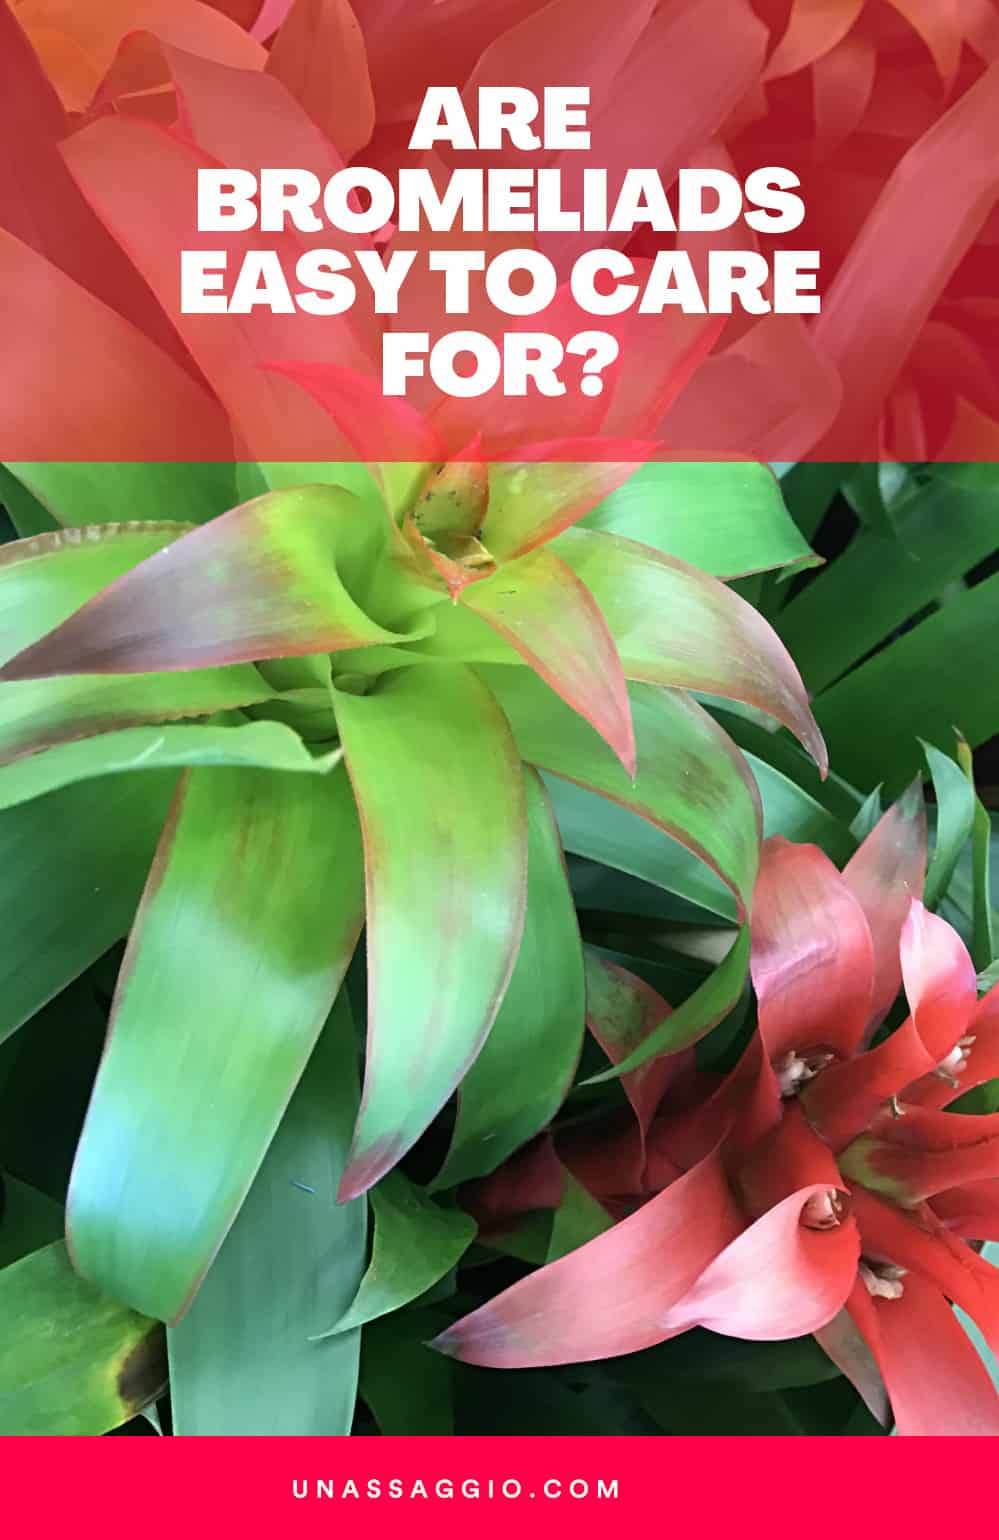 Are Bromeliads Easy to Care For?